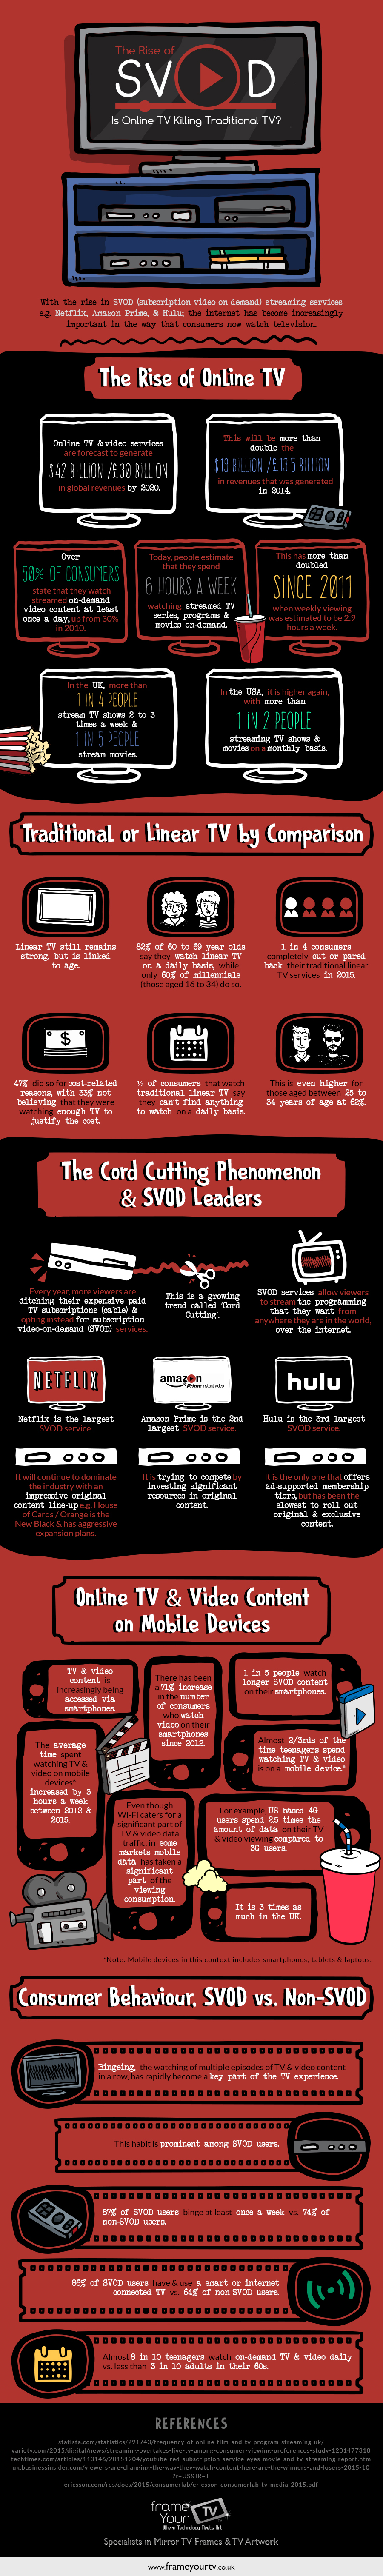 Is Online TV Killing Traditional TV?